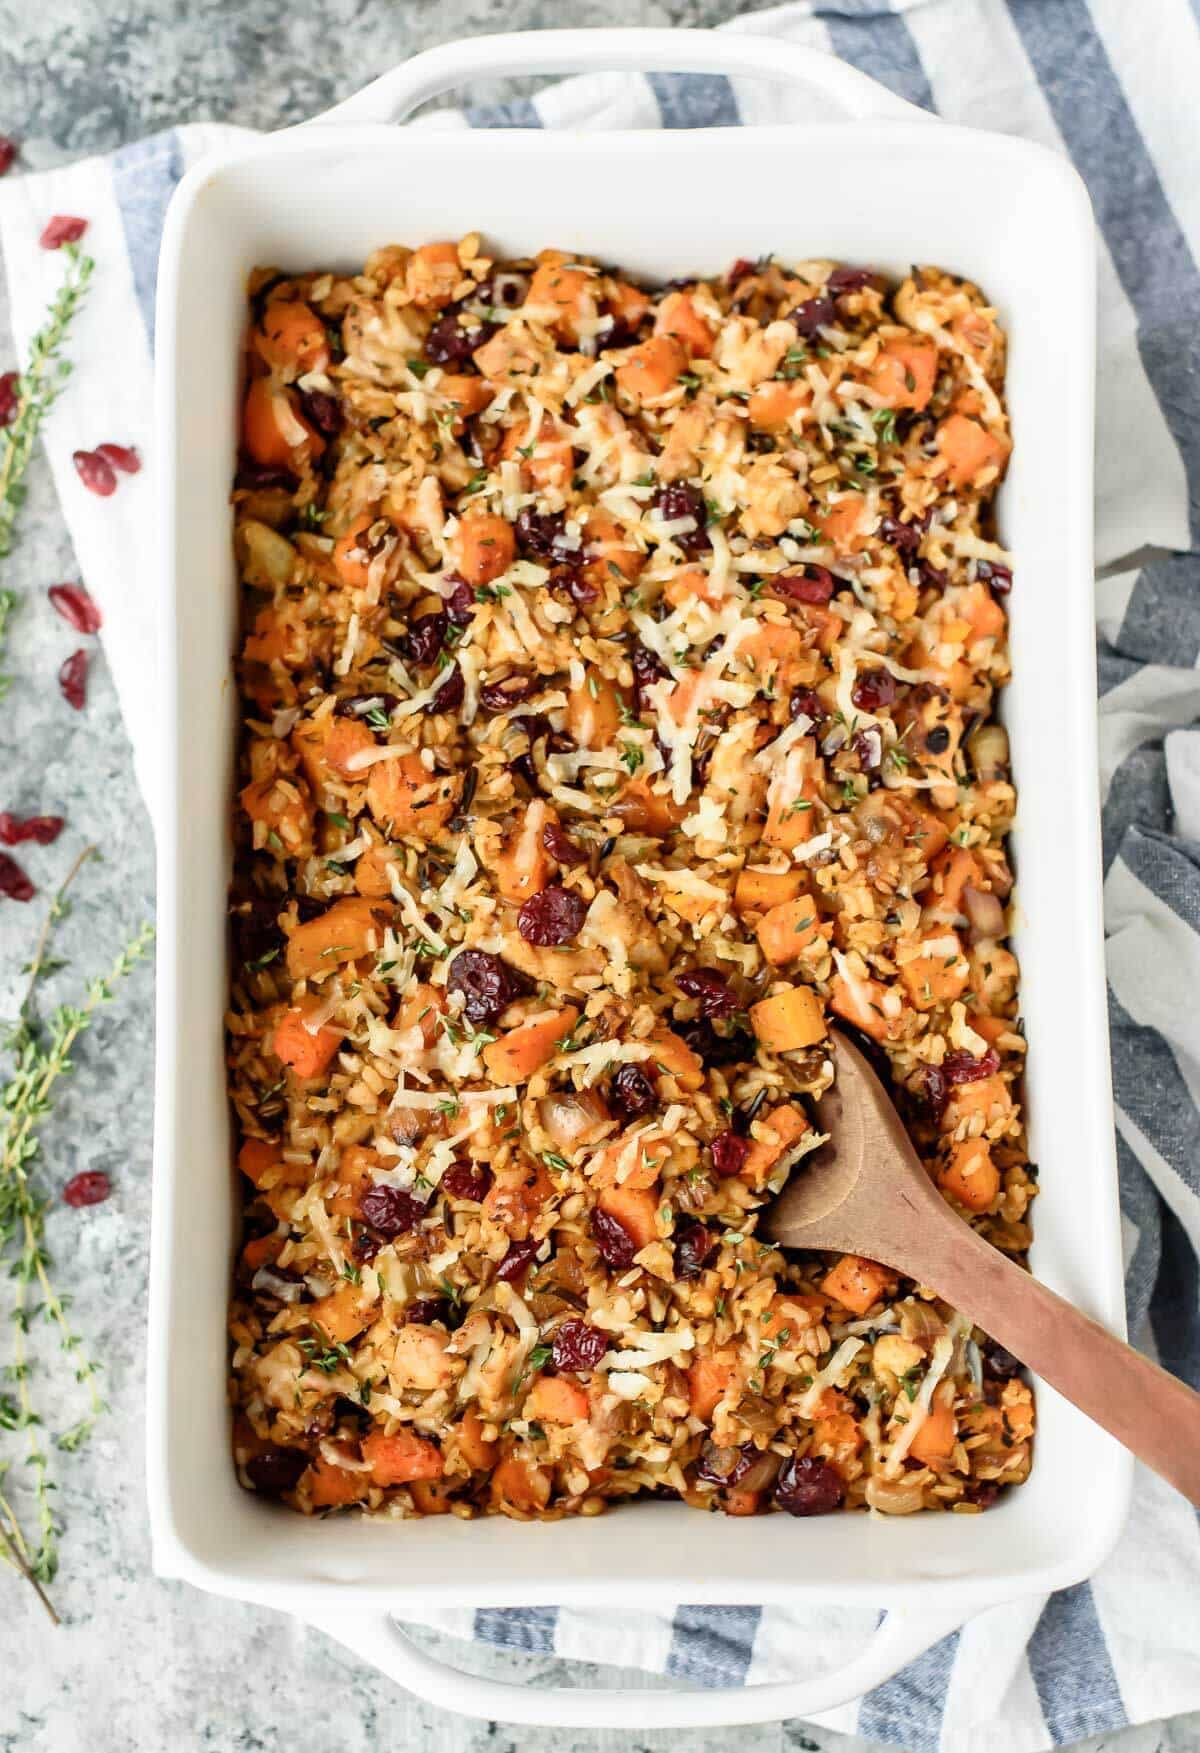 Wild rice recipes -- photo of Chicken and Wild Rice Casserole with Butternut Squash and Cranberries by Well Plated